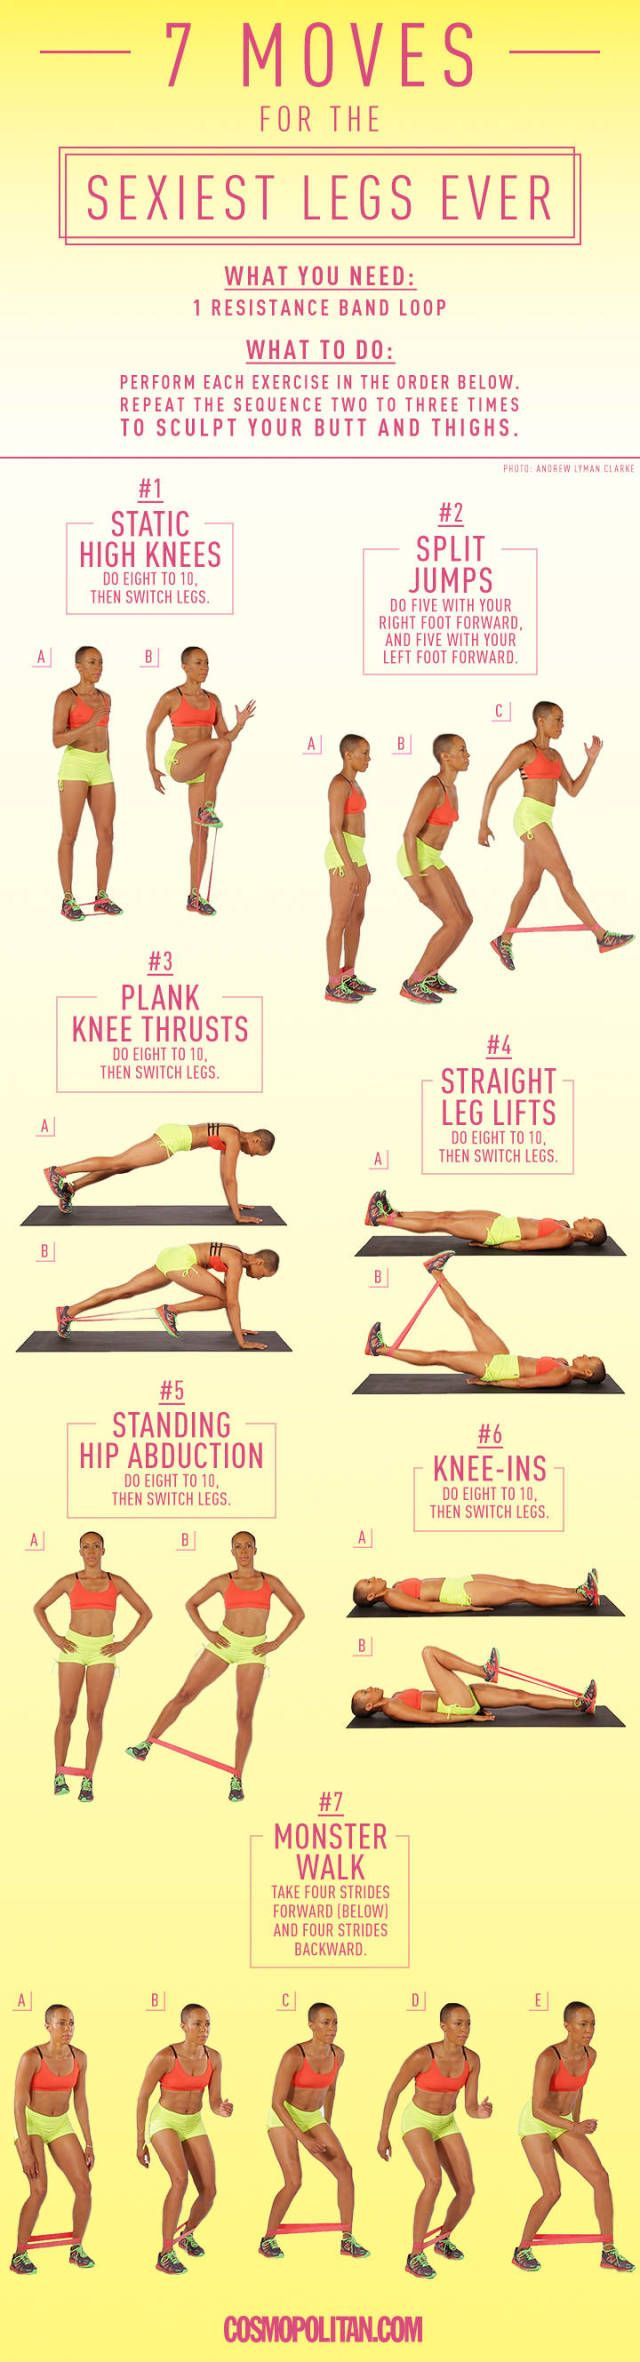 Do these exercises and then take the #1 fitness meal to get in shape. #legworkouts #fitness #bodybuilding